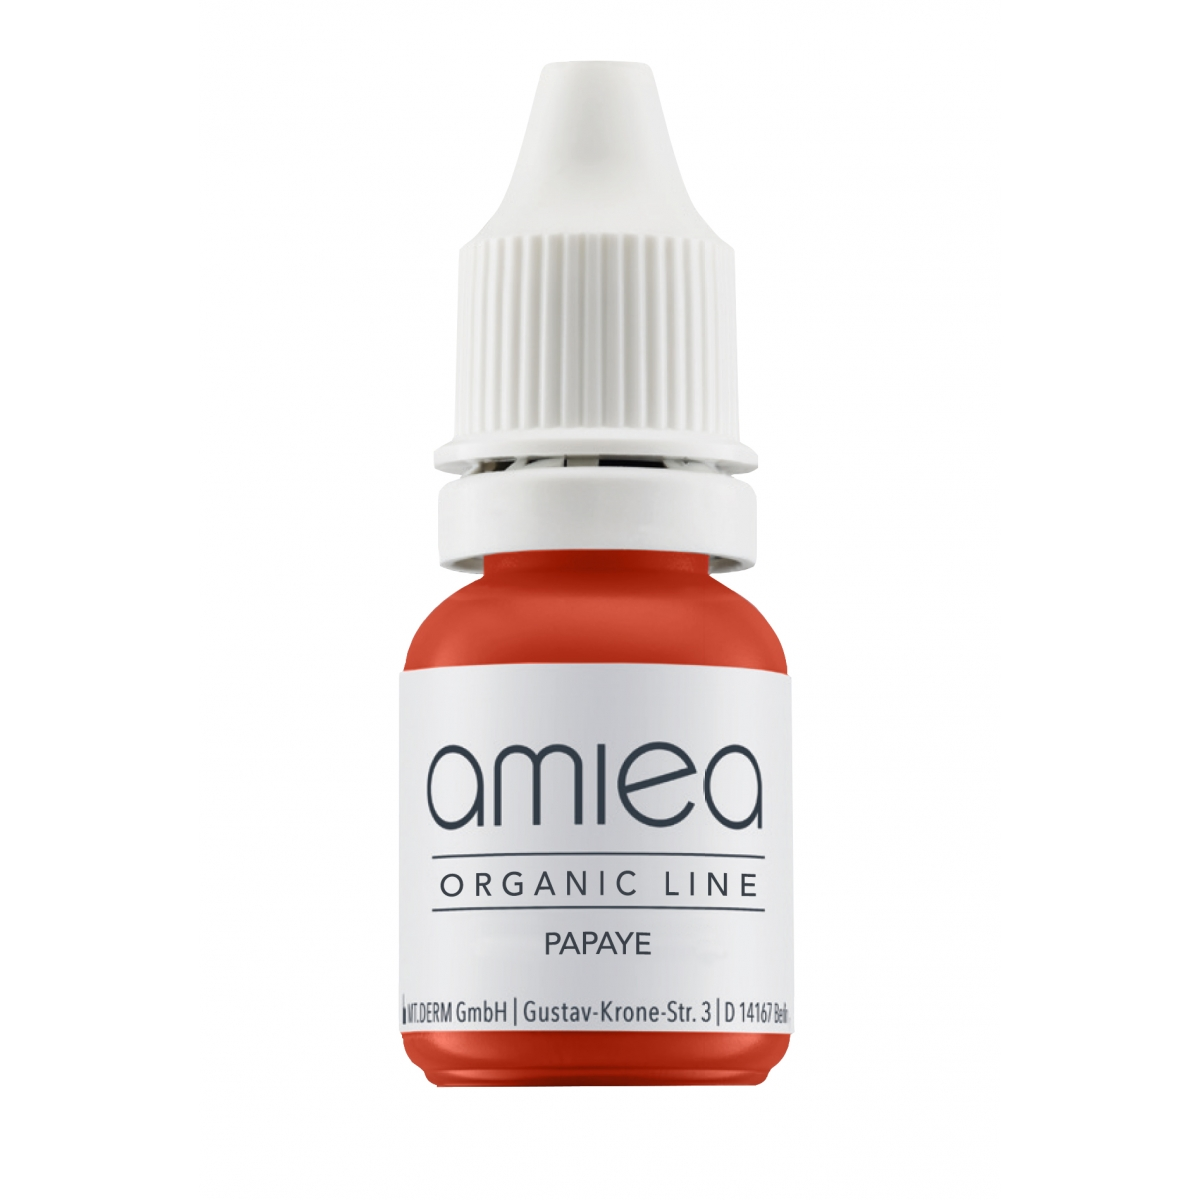 Organicline (5 ml)  - PIGMENTS AMIEA ORGANICLINE PAPAYE, Flacon 5 ml